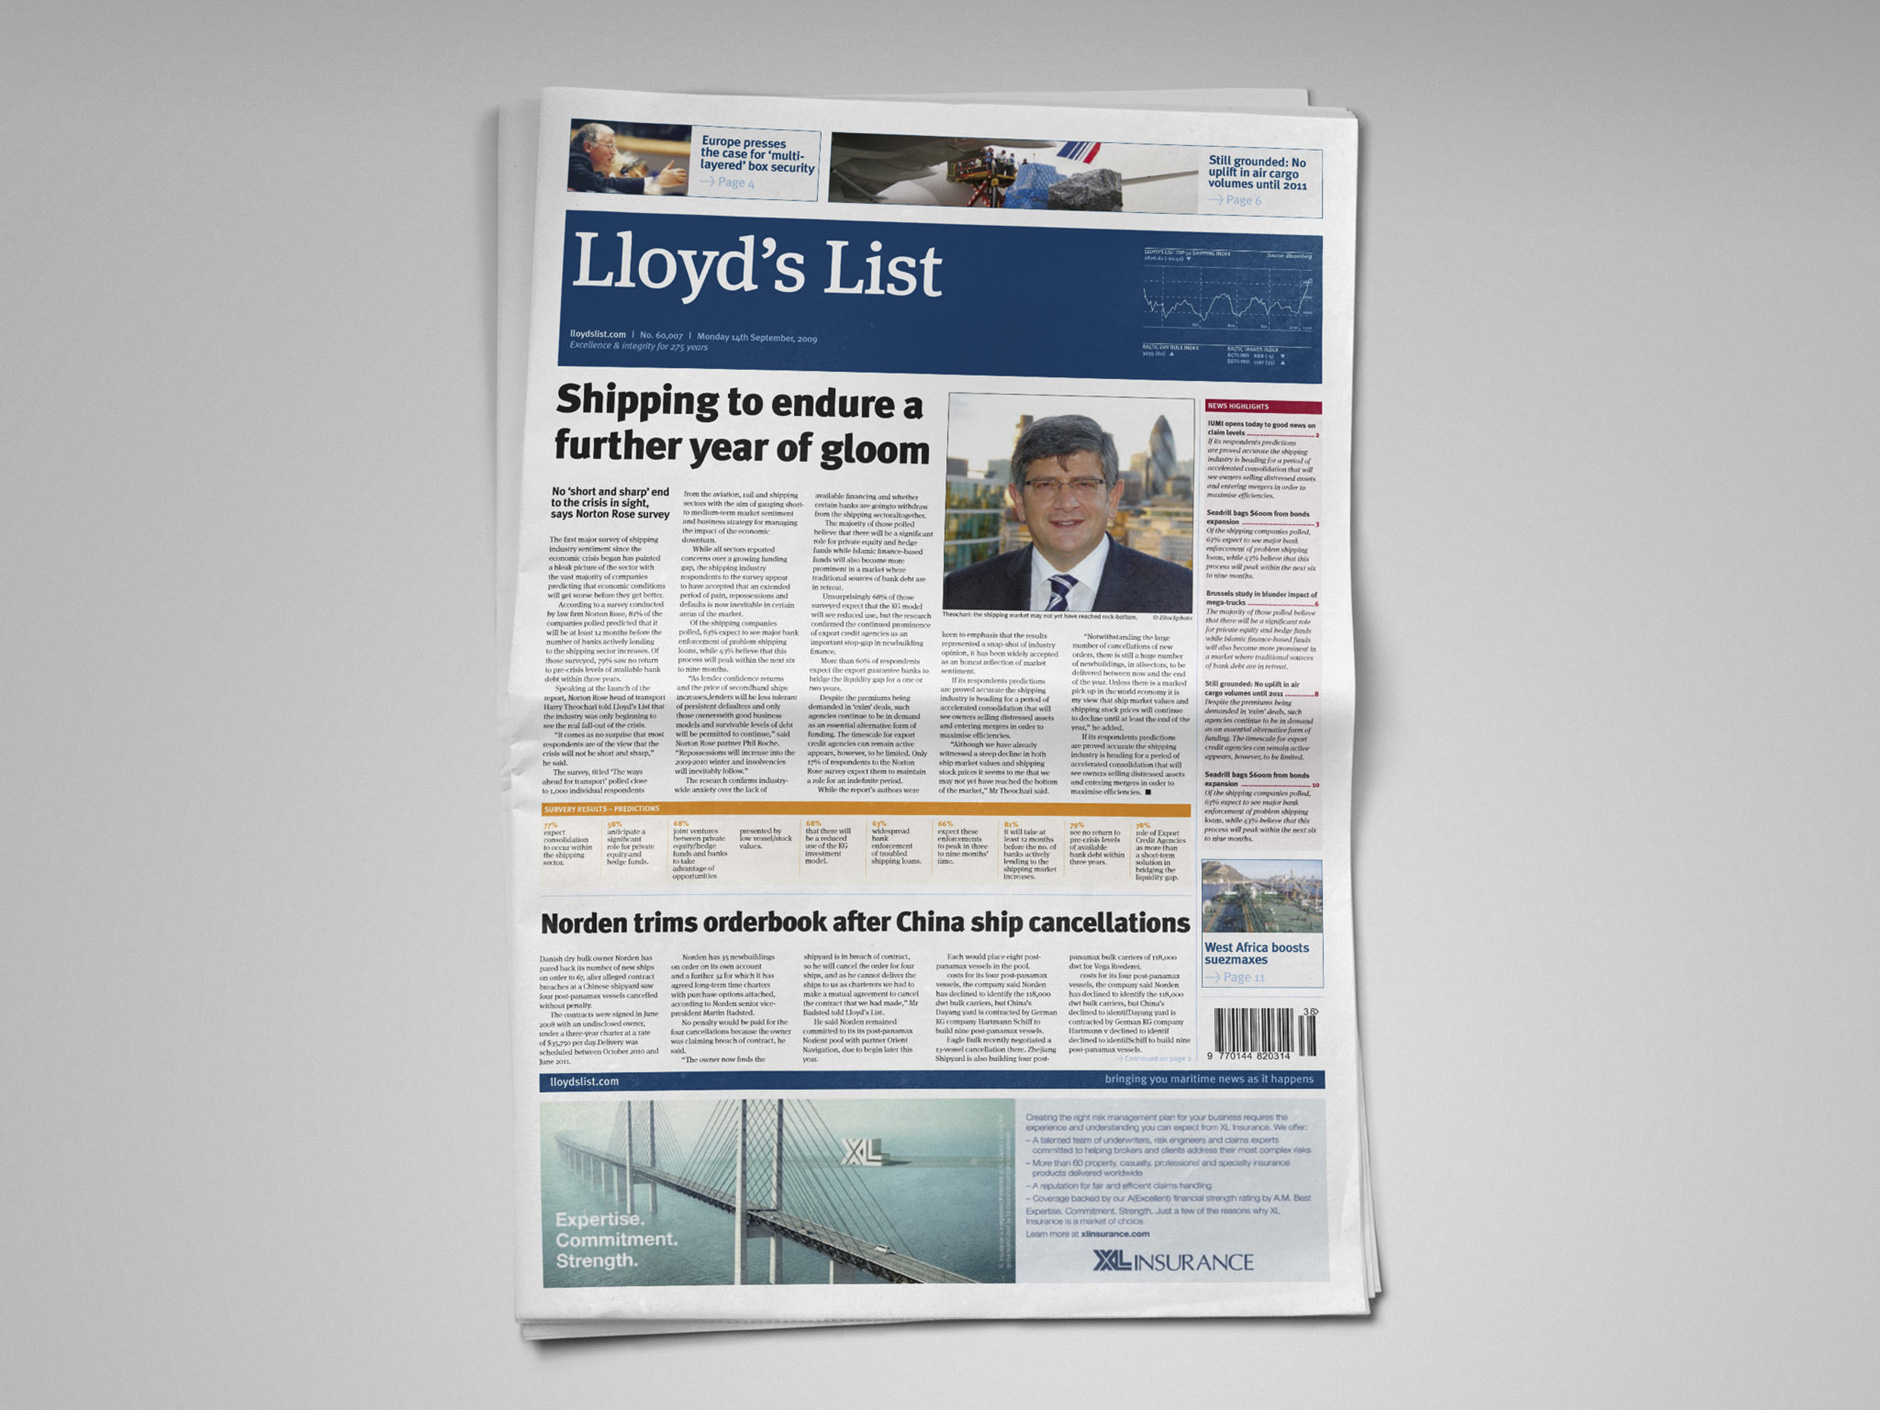 Lloyds-List-Newspaper-2